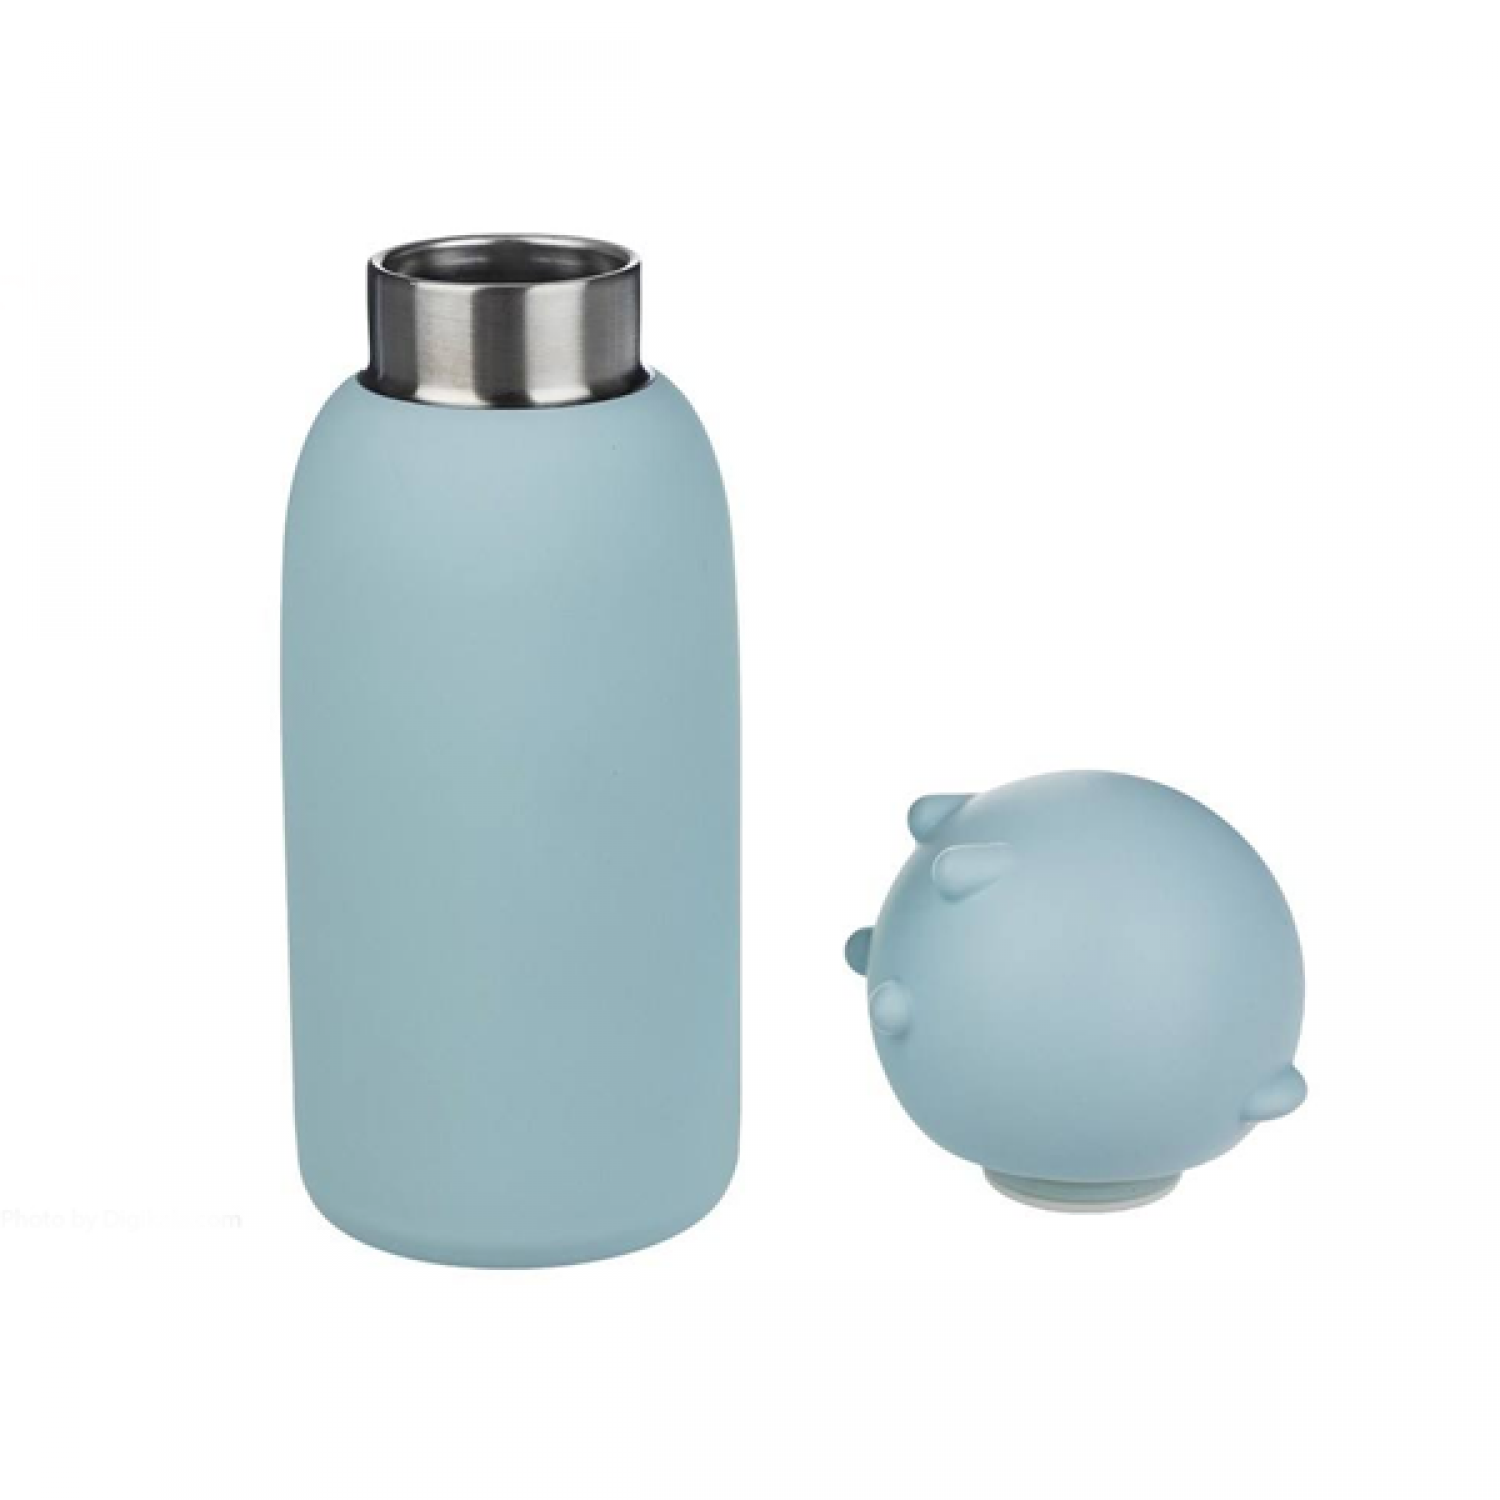 Diller - MLH8587, Cold and Hot Beverages Stainless Steel Flask